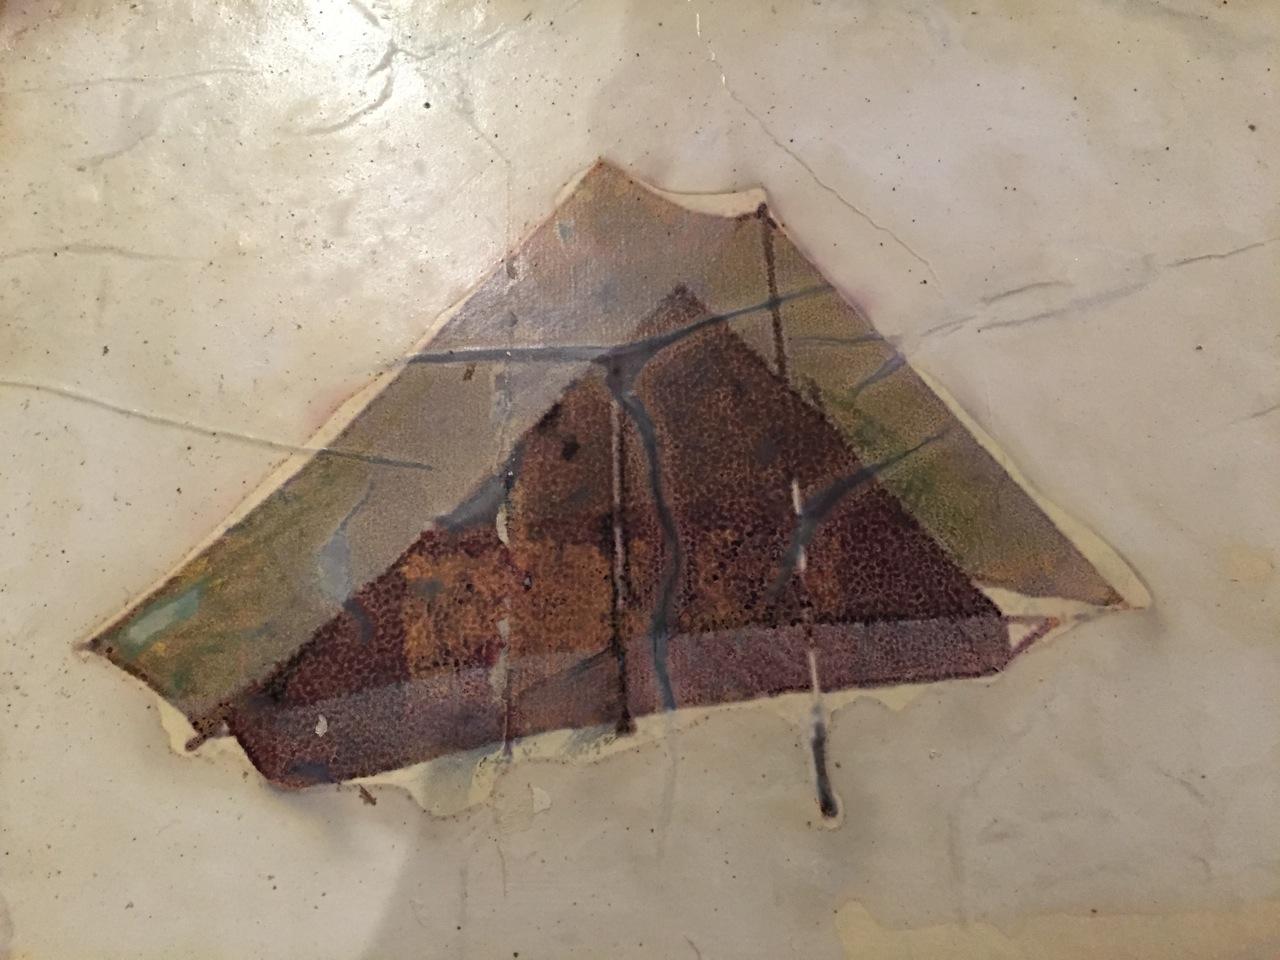 Tent by Dean Dass 						at Les Yeux du Monde Art Gallery